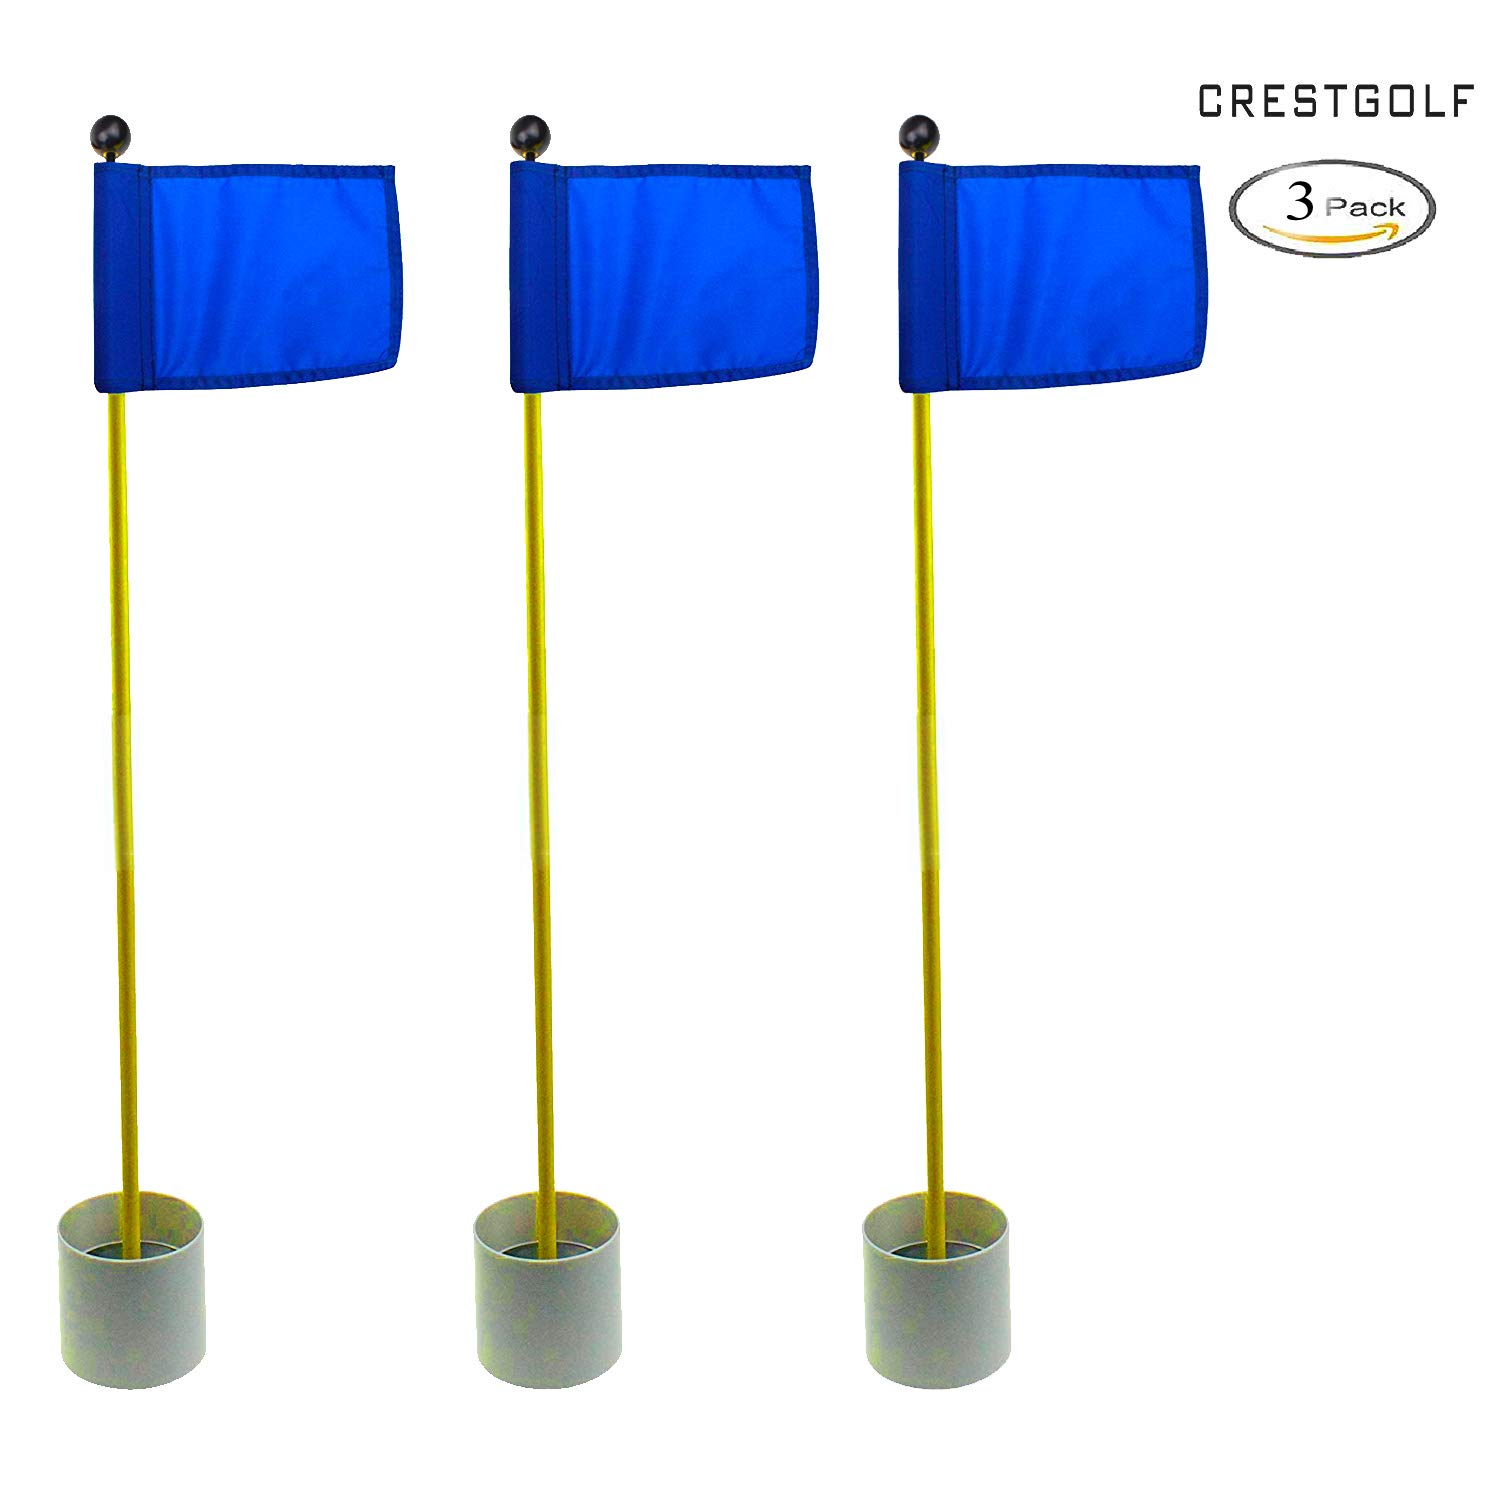 CRESTGOLF 3Sets Backyard Practice Golf Hole Pole Cup Flag Stick, 3 Section,Golf Putting Green Flagstick (blue)